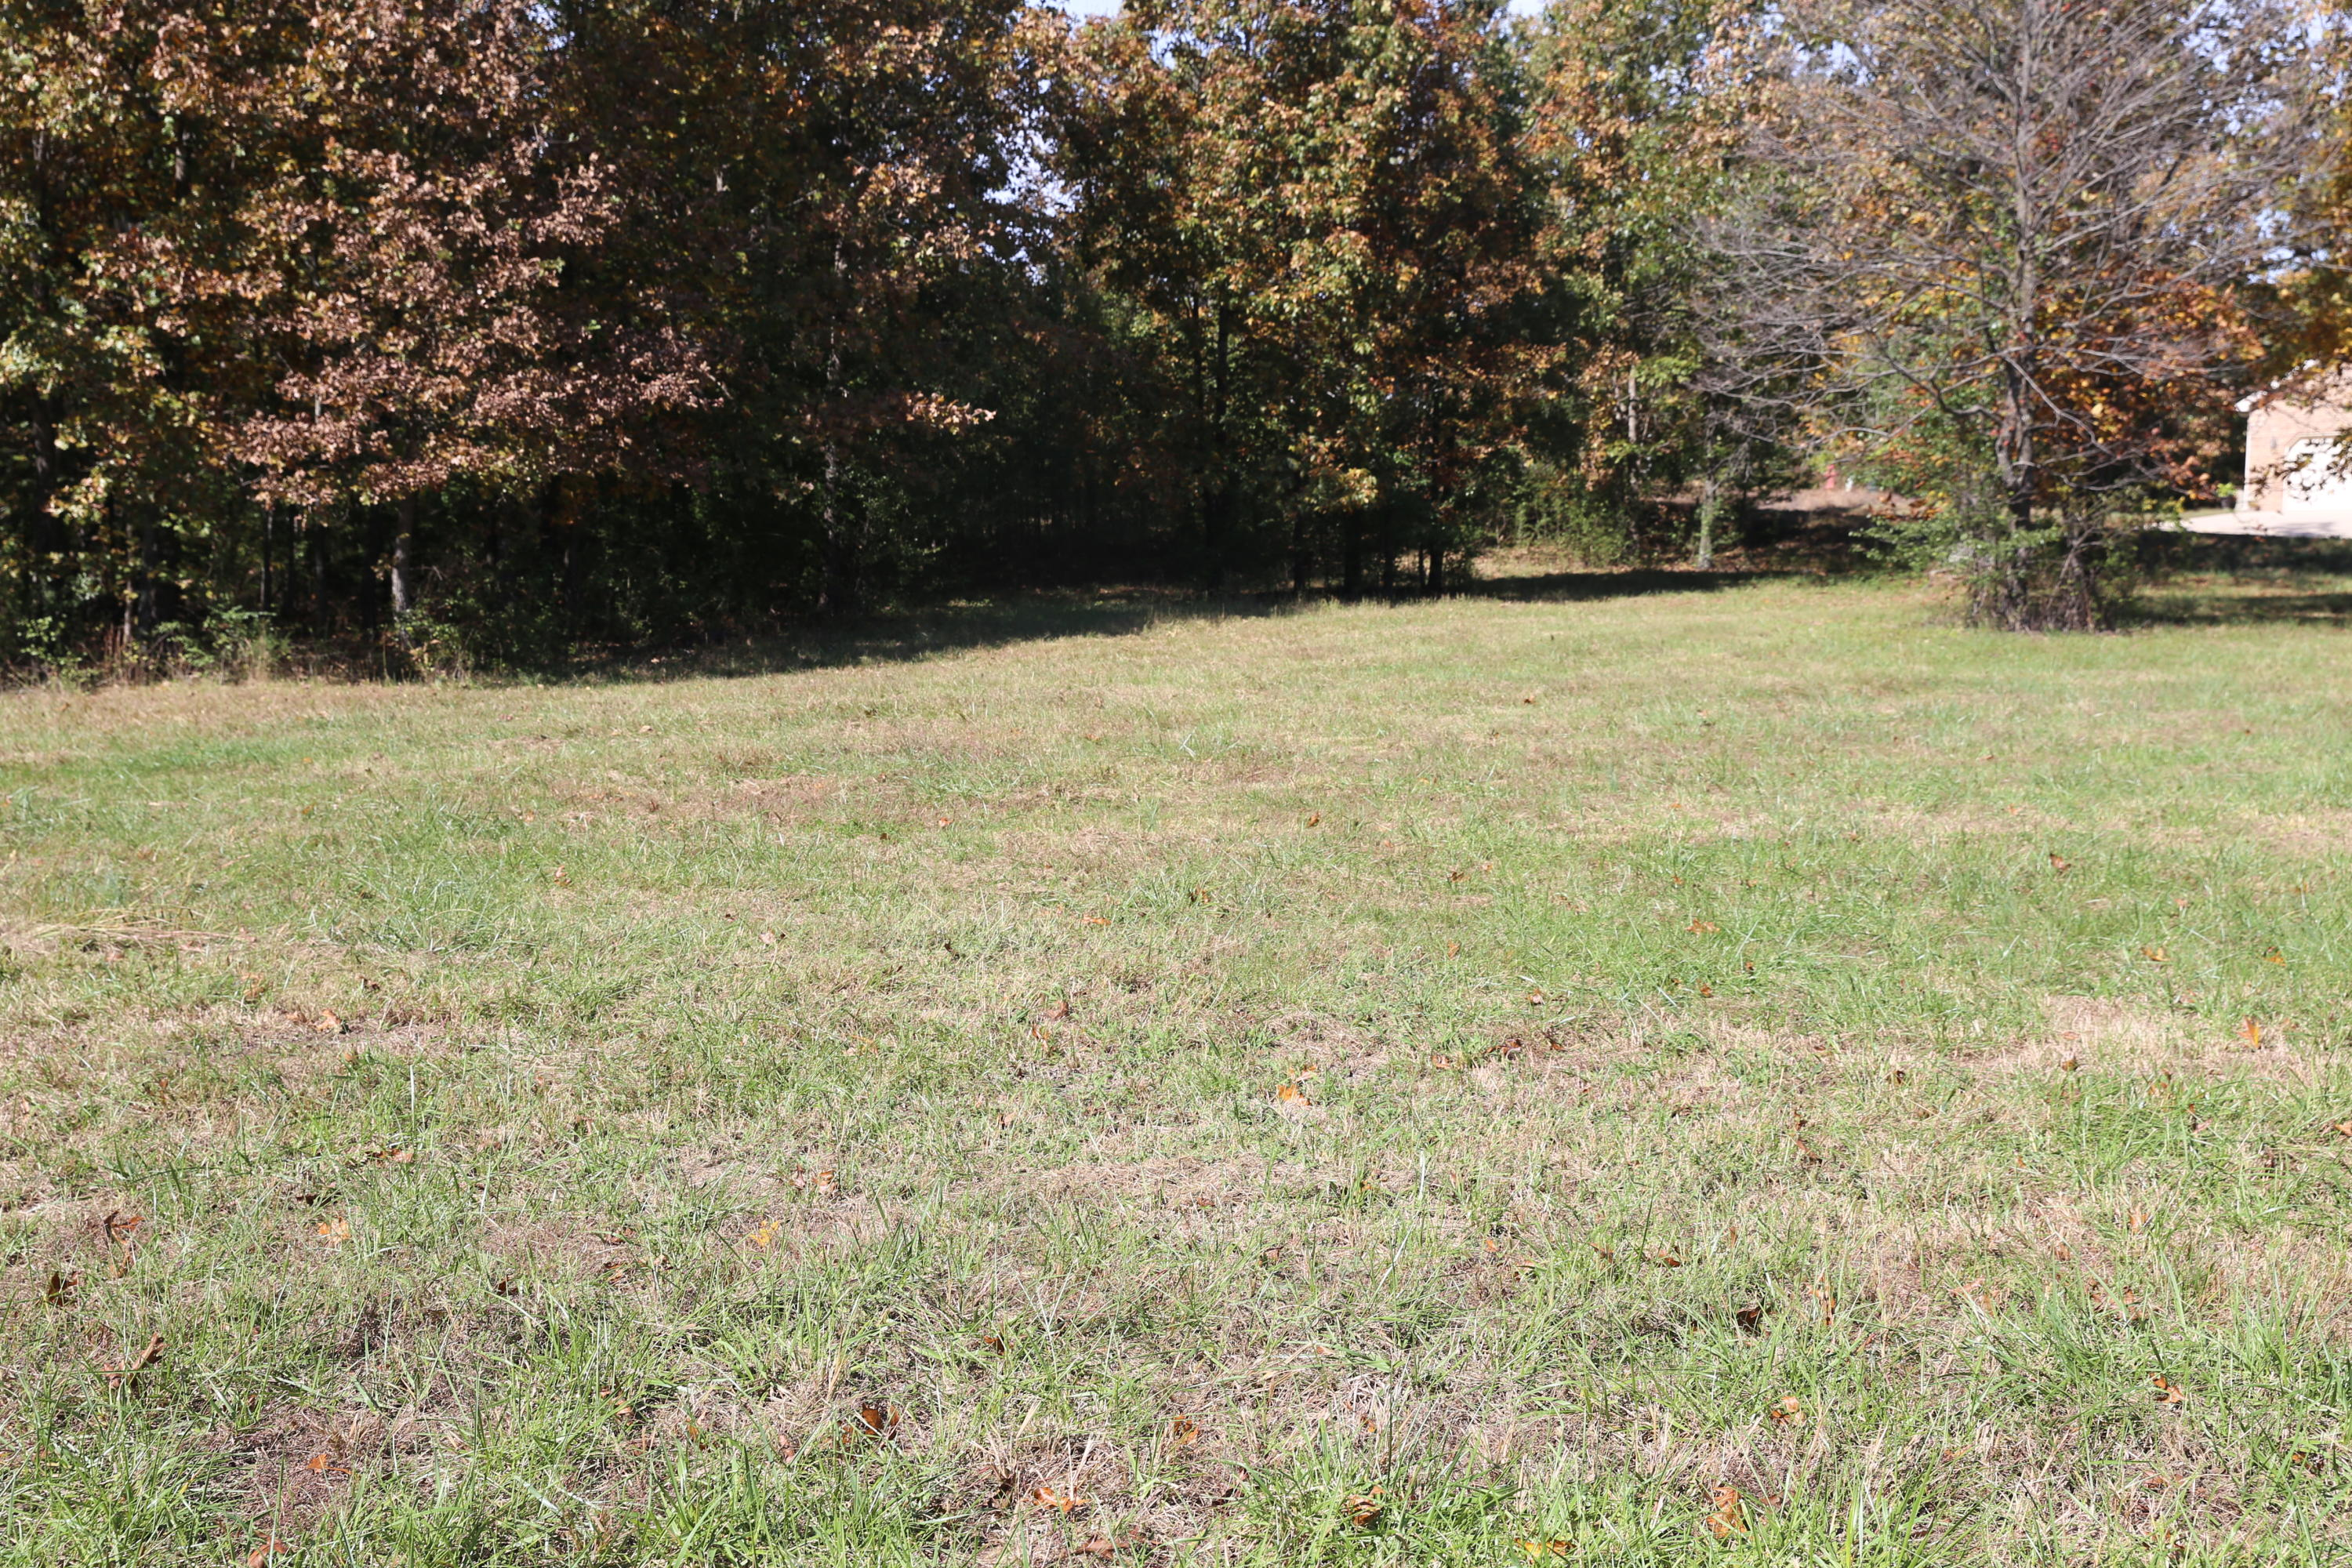 000 Wild Turkey Road Block 1 Lot 10 Property Photo